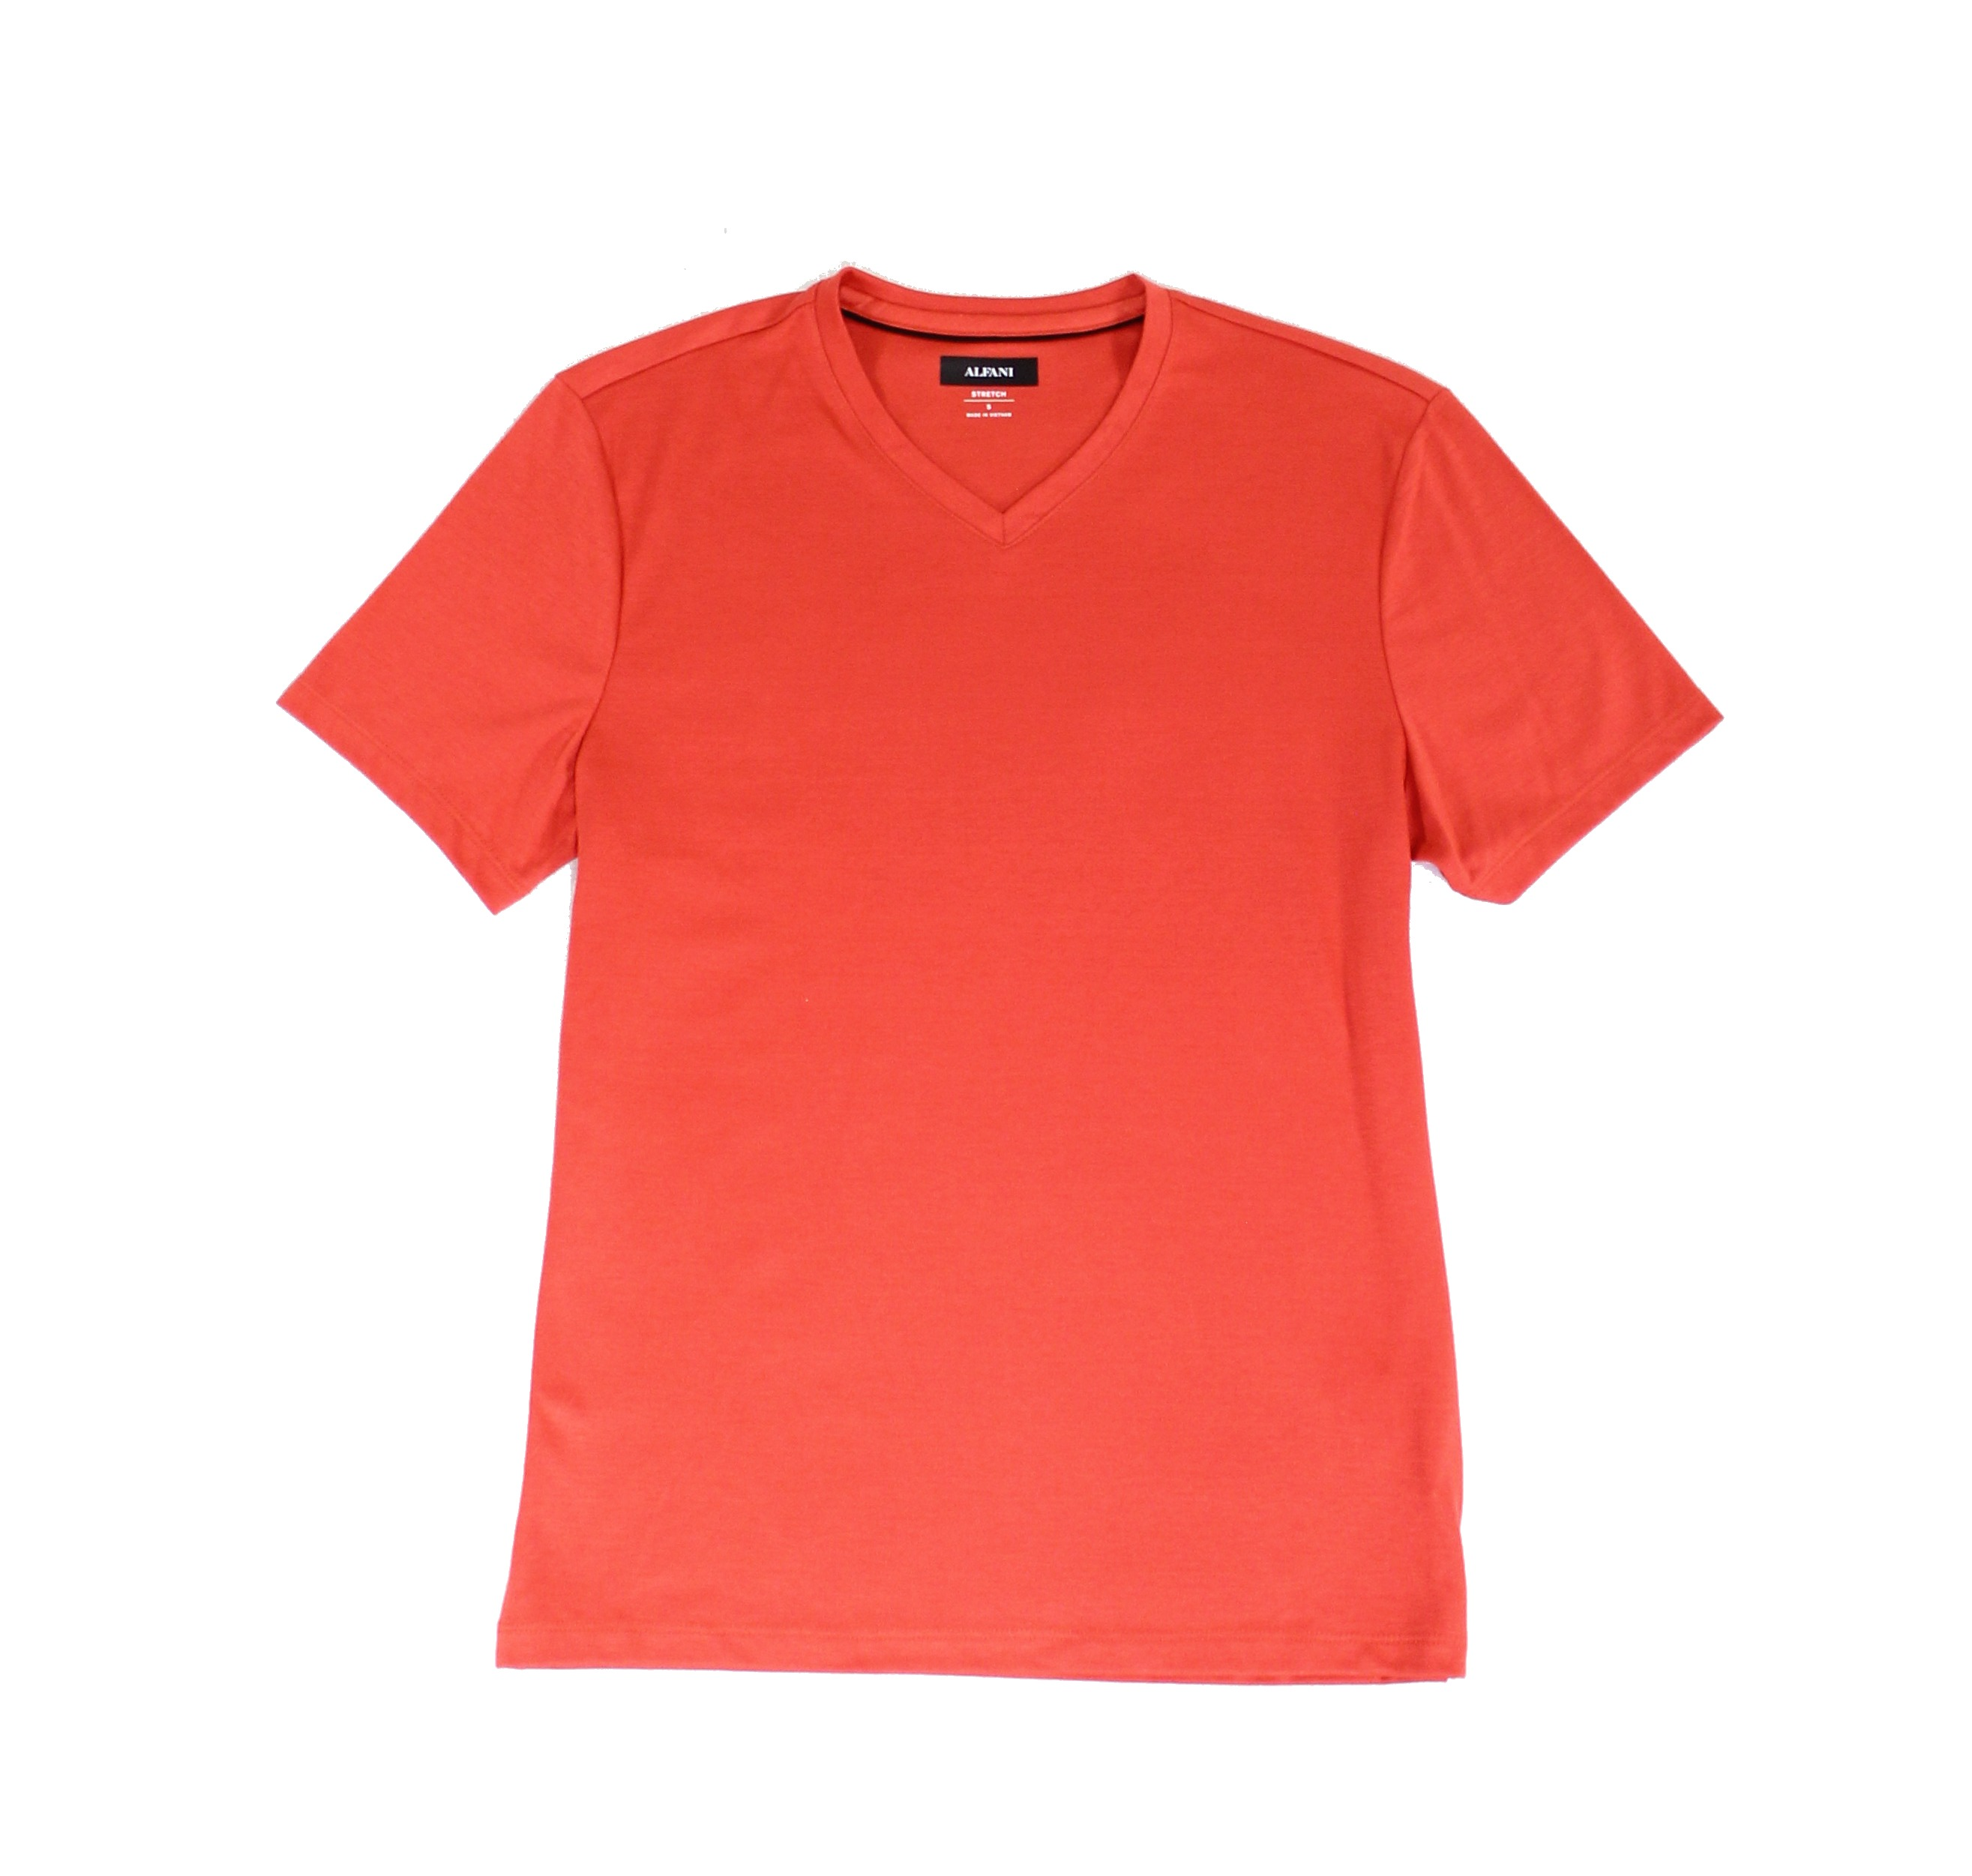 New-Alfani-Solid-Baked-Apple-Red-Mens-Size-XL-Stretch-V-Neck-Tee-Shirt-40-004